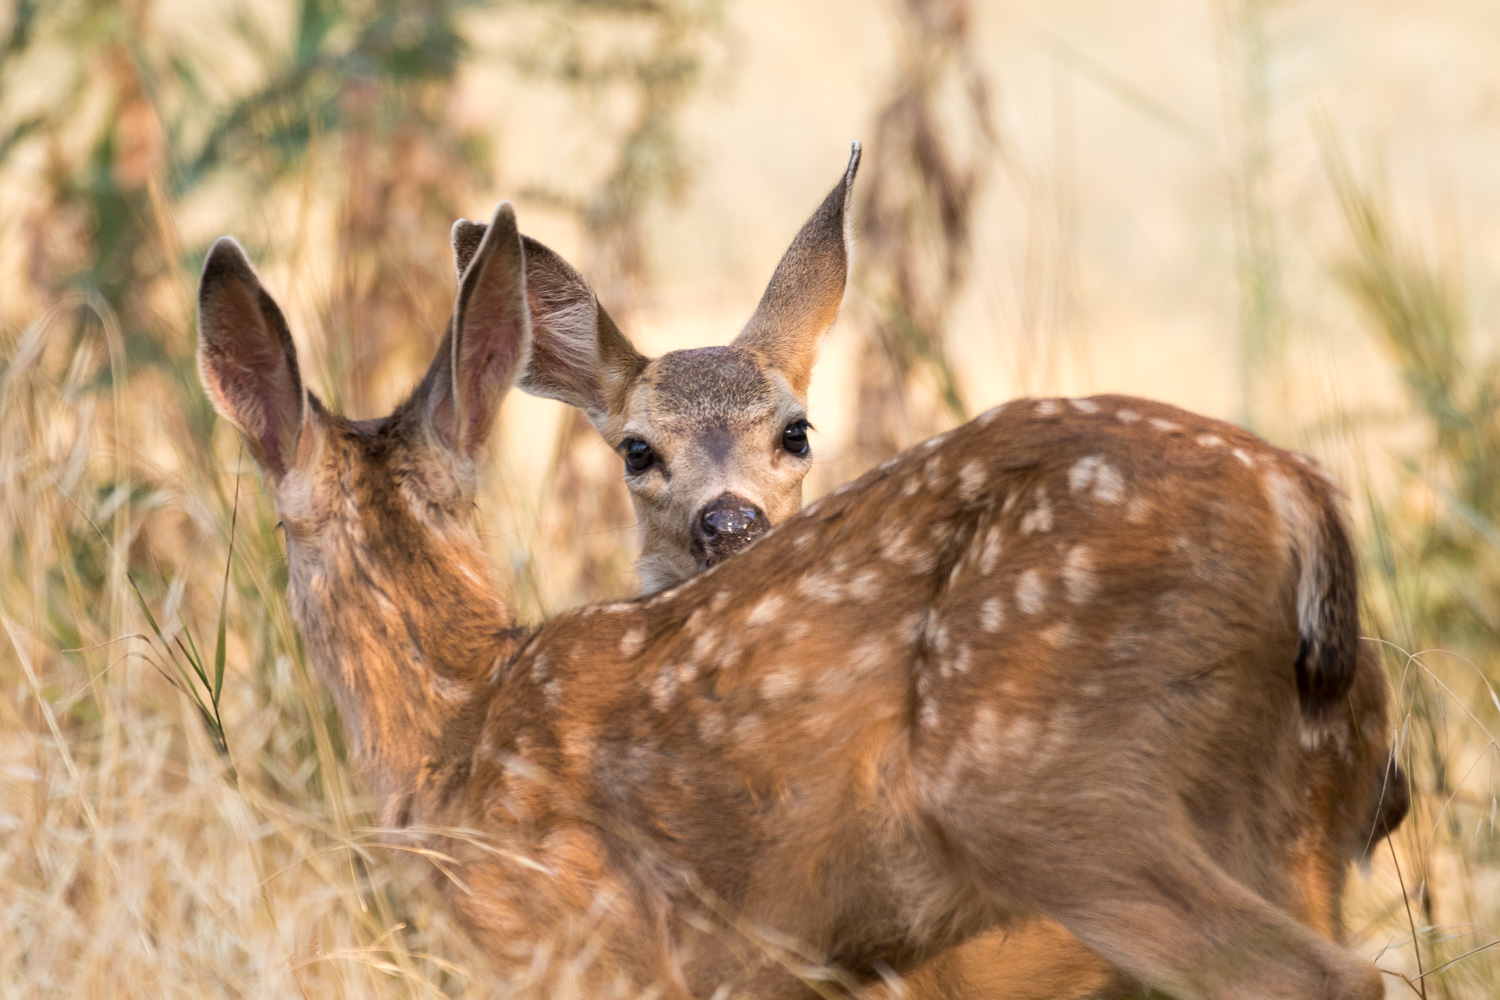 Two deer fawns